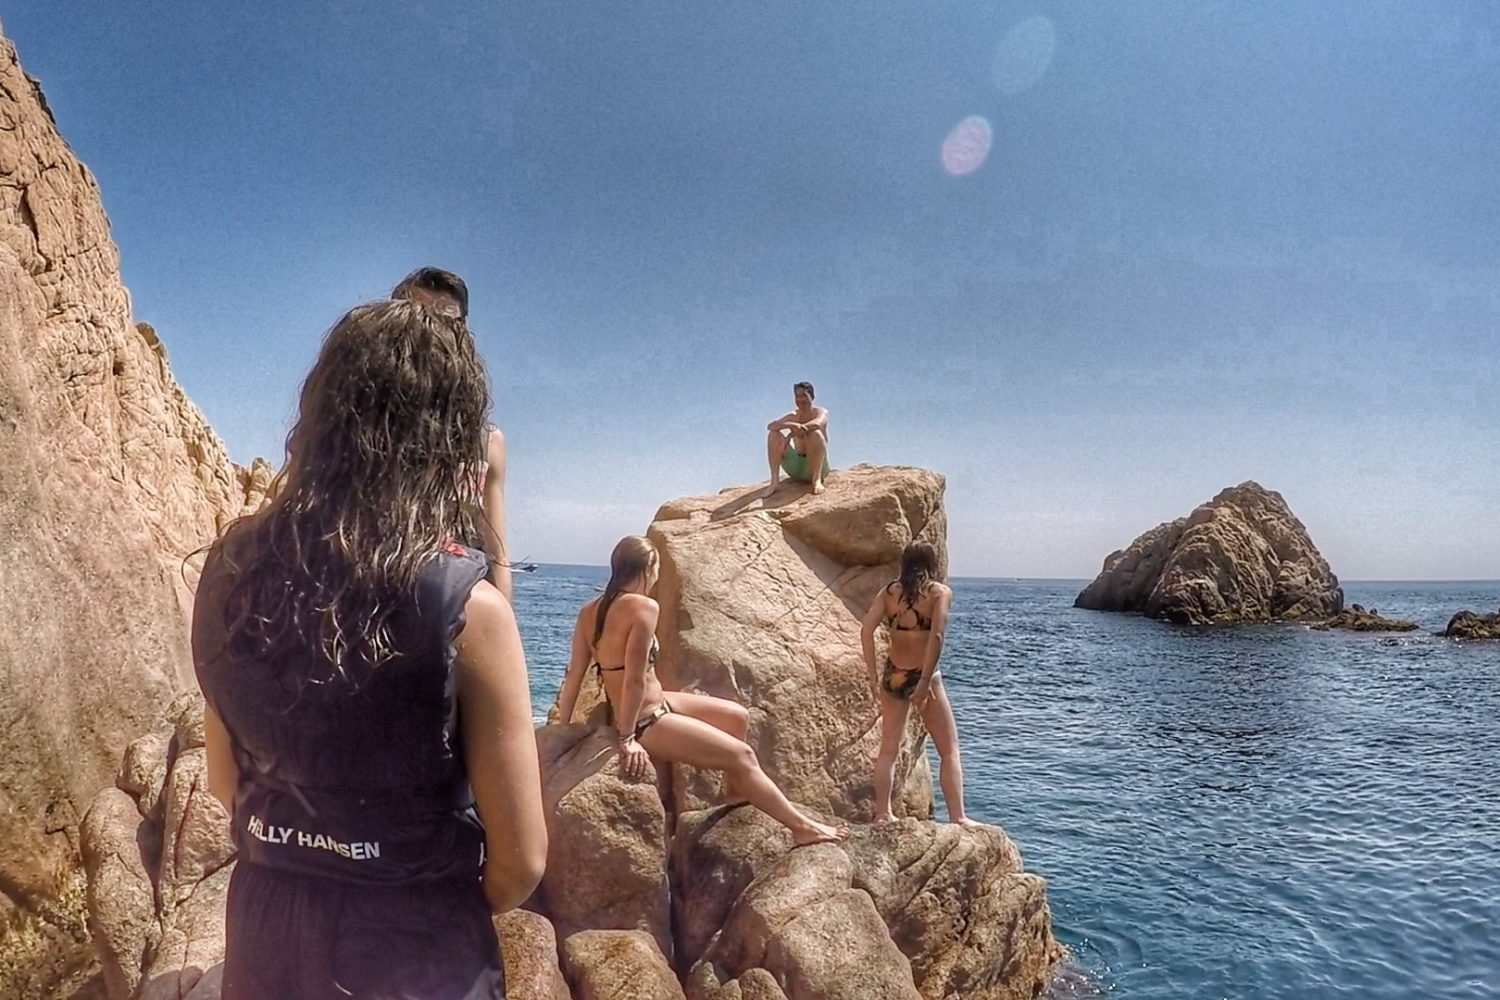 Picnic stop and cliff jumping on the small group kayaking tour in the Costa Brava.